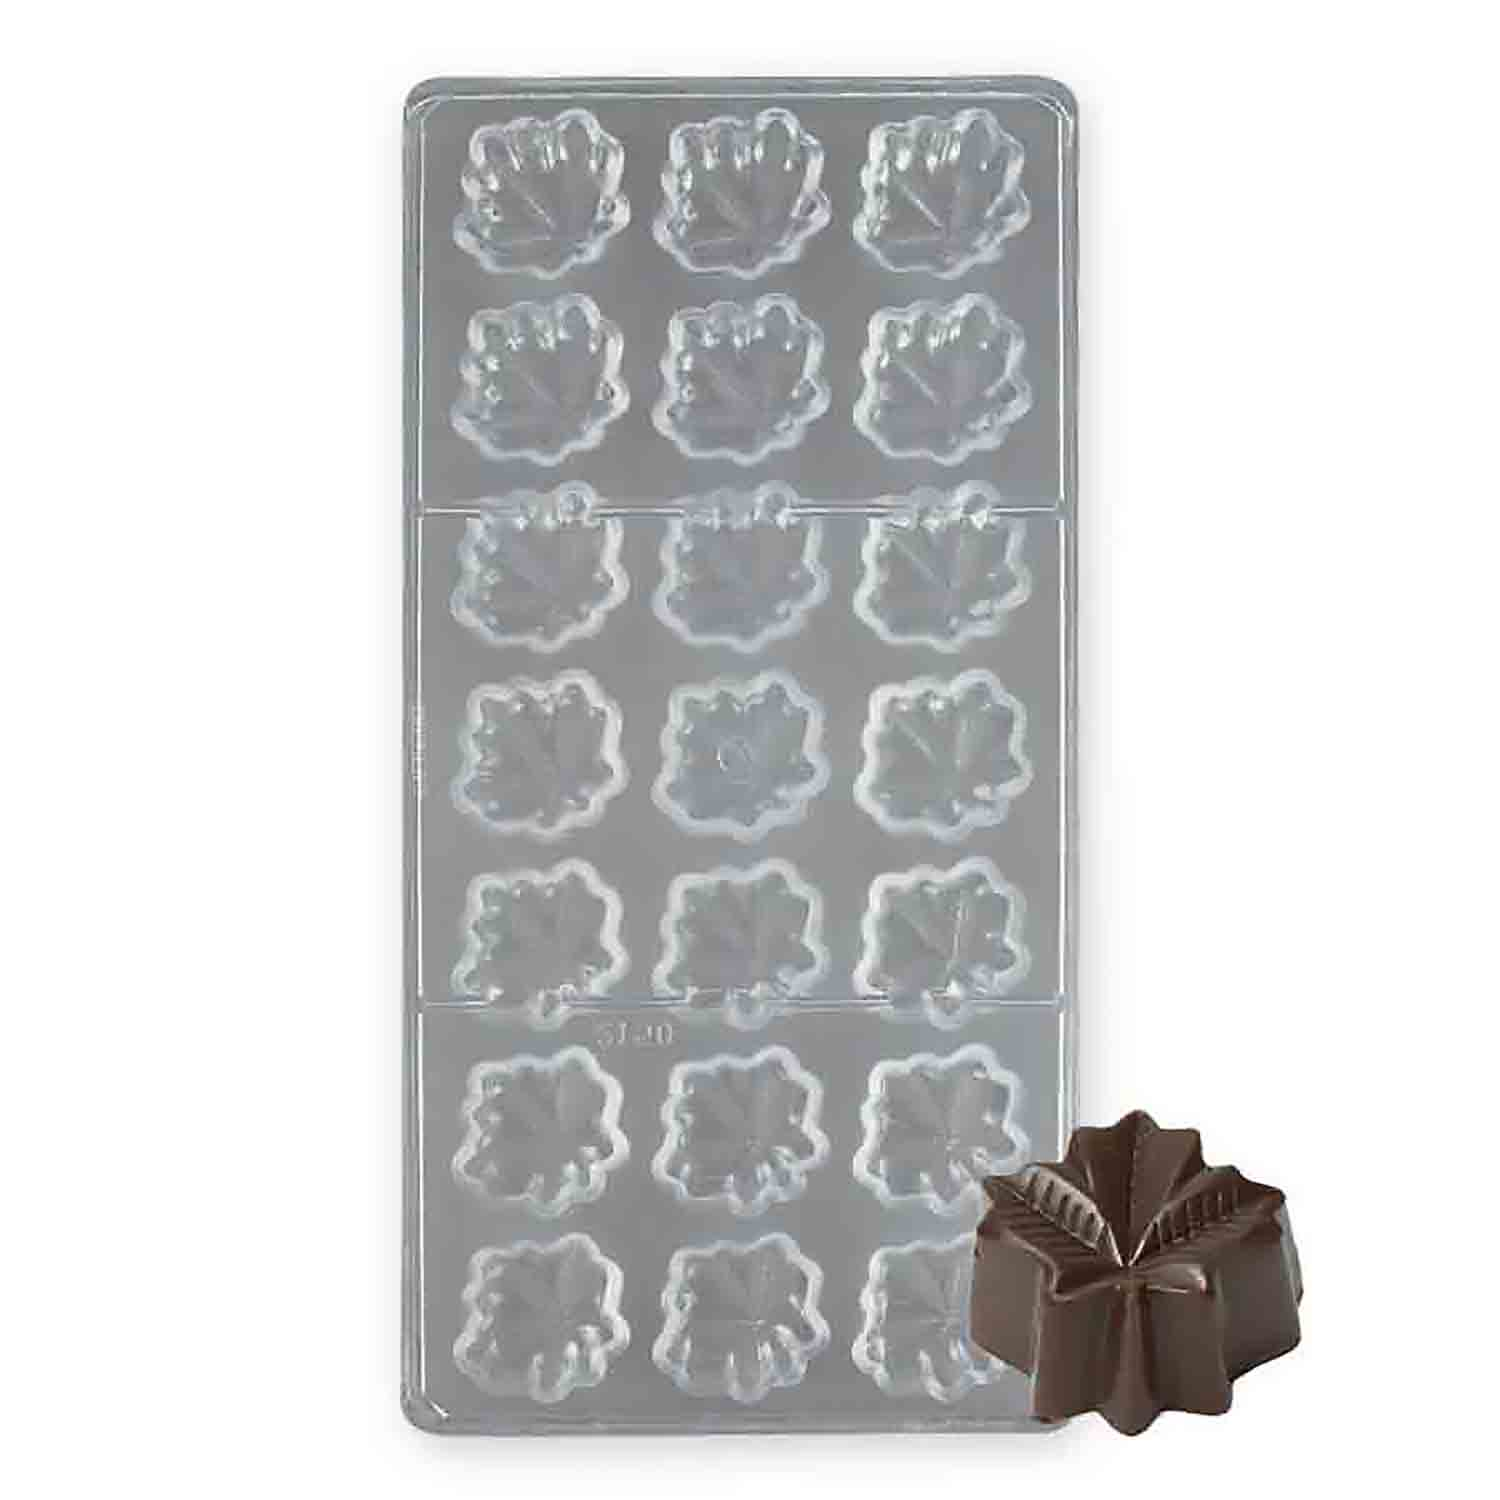 Maple Leaf Polycarbonate Chocolate Candy Mold